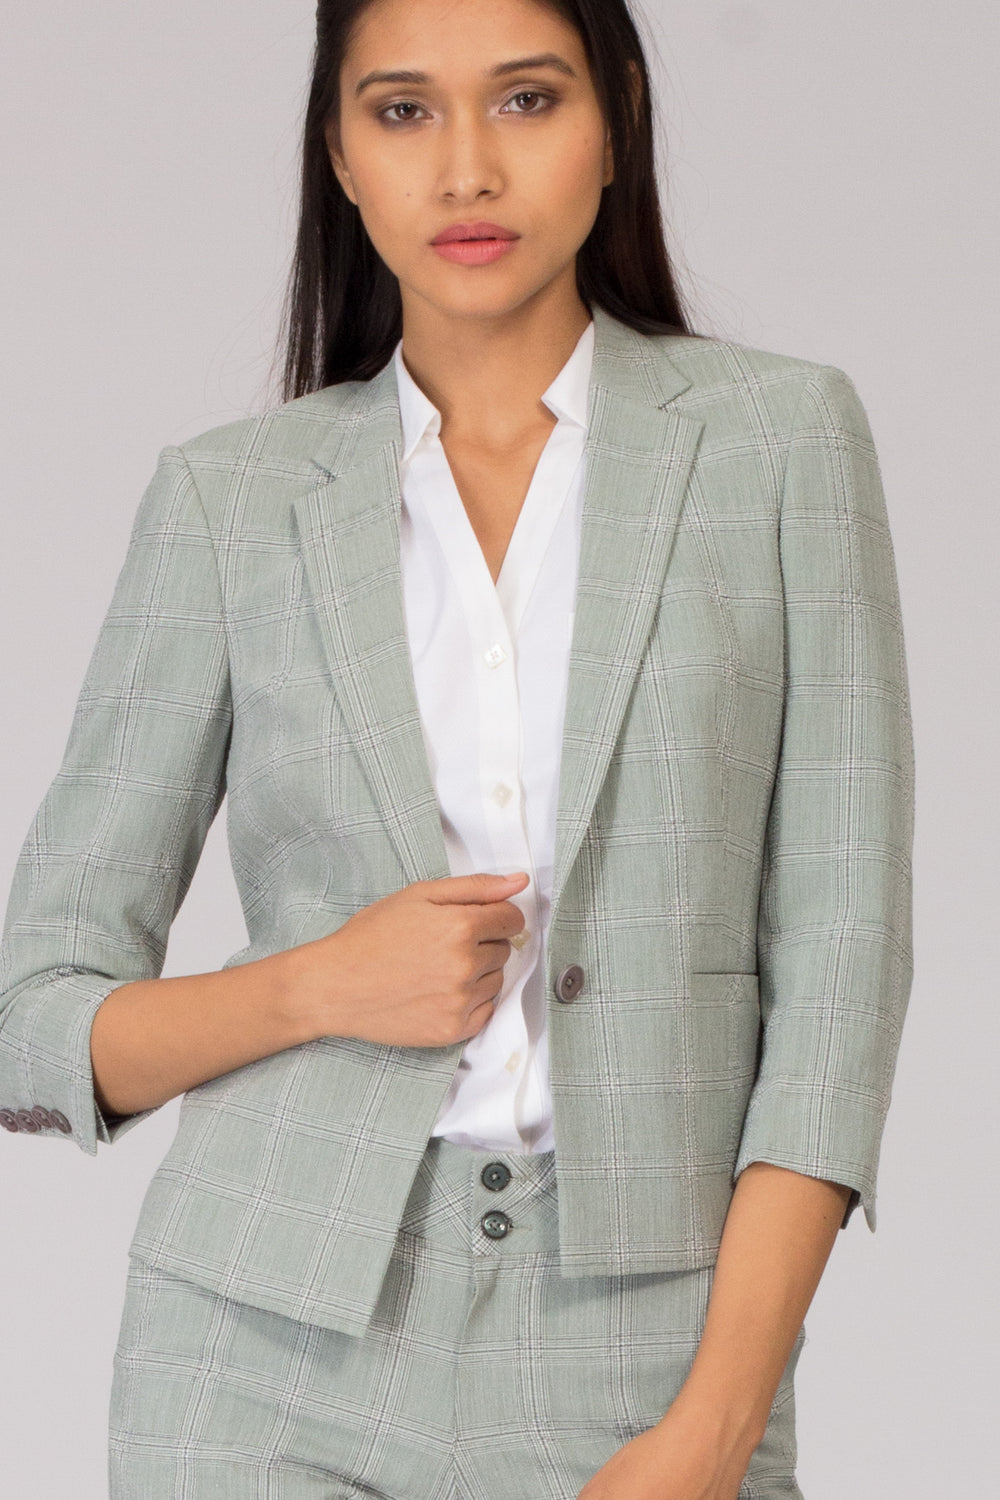 Light Green Check Semi Formal Blazer for Working Women. Shop for stylish business suits and professional looks at www.intermod.in